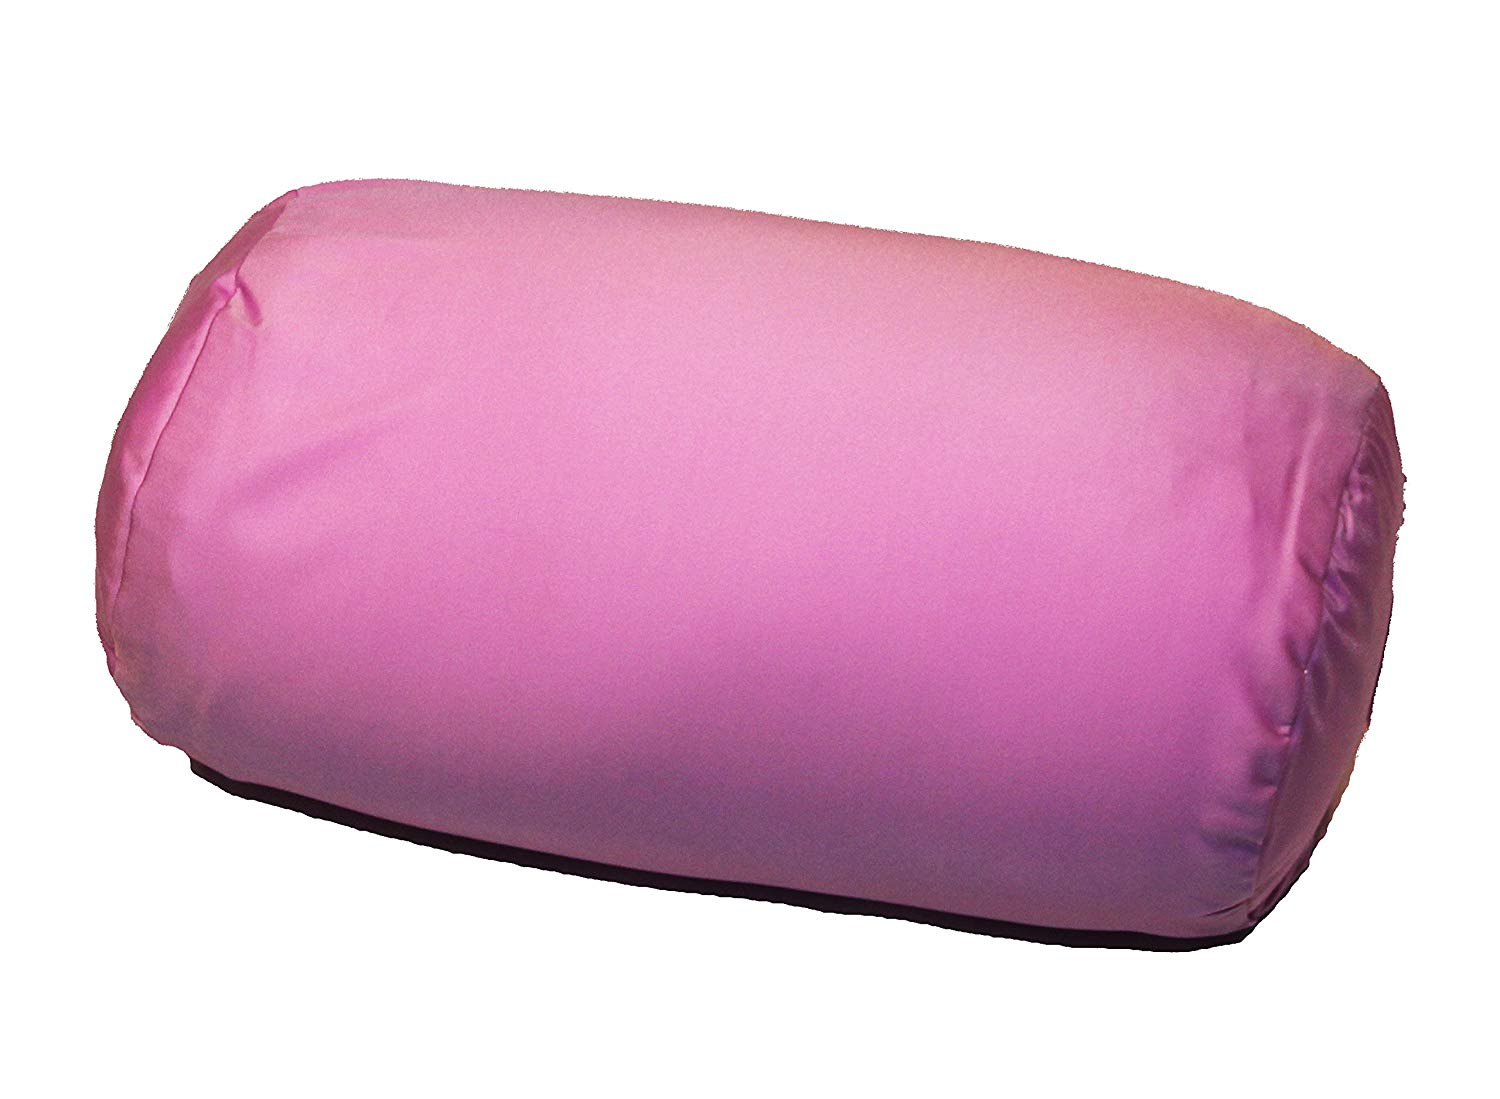 Squishy Deluxe Orthopedic Pillow Review by www.snoremagazine.com